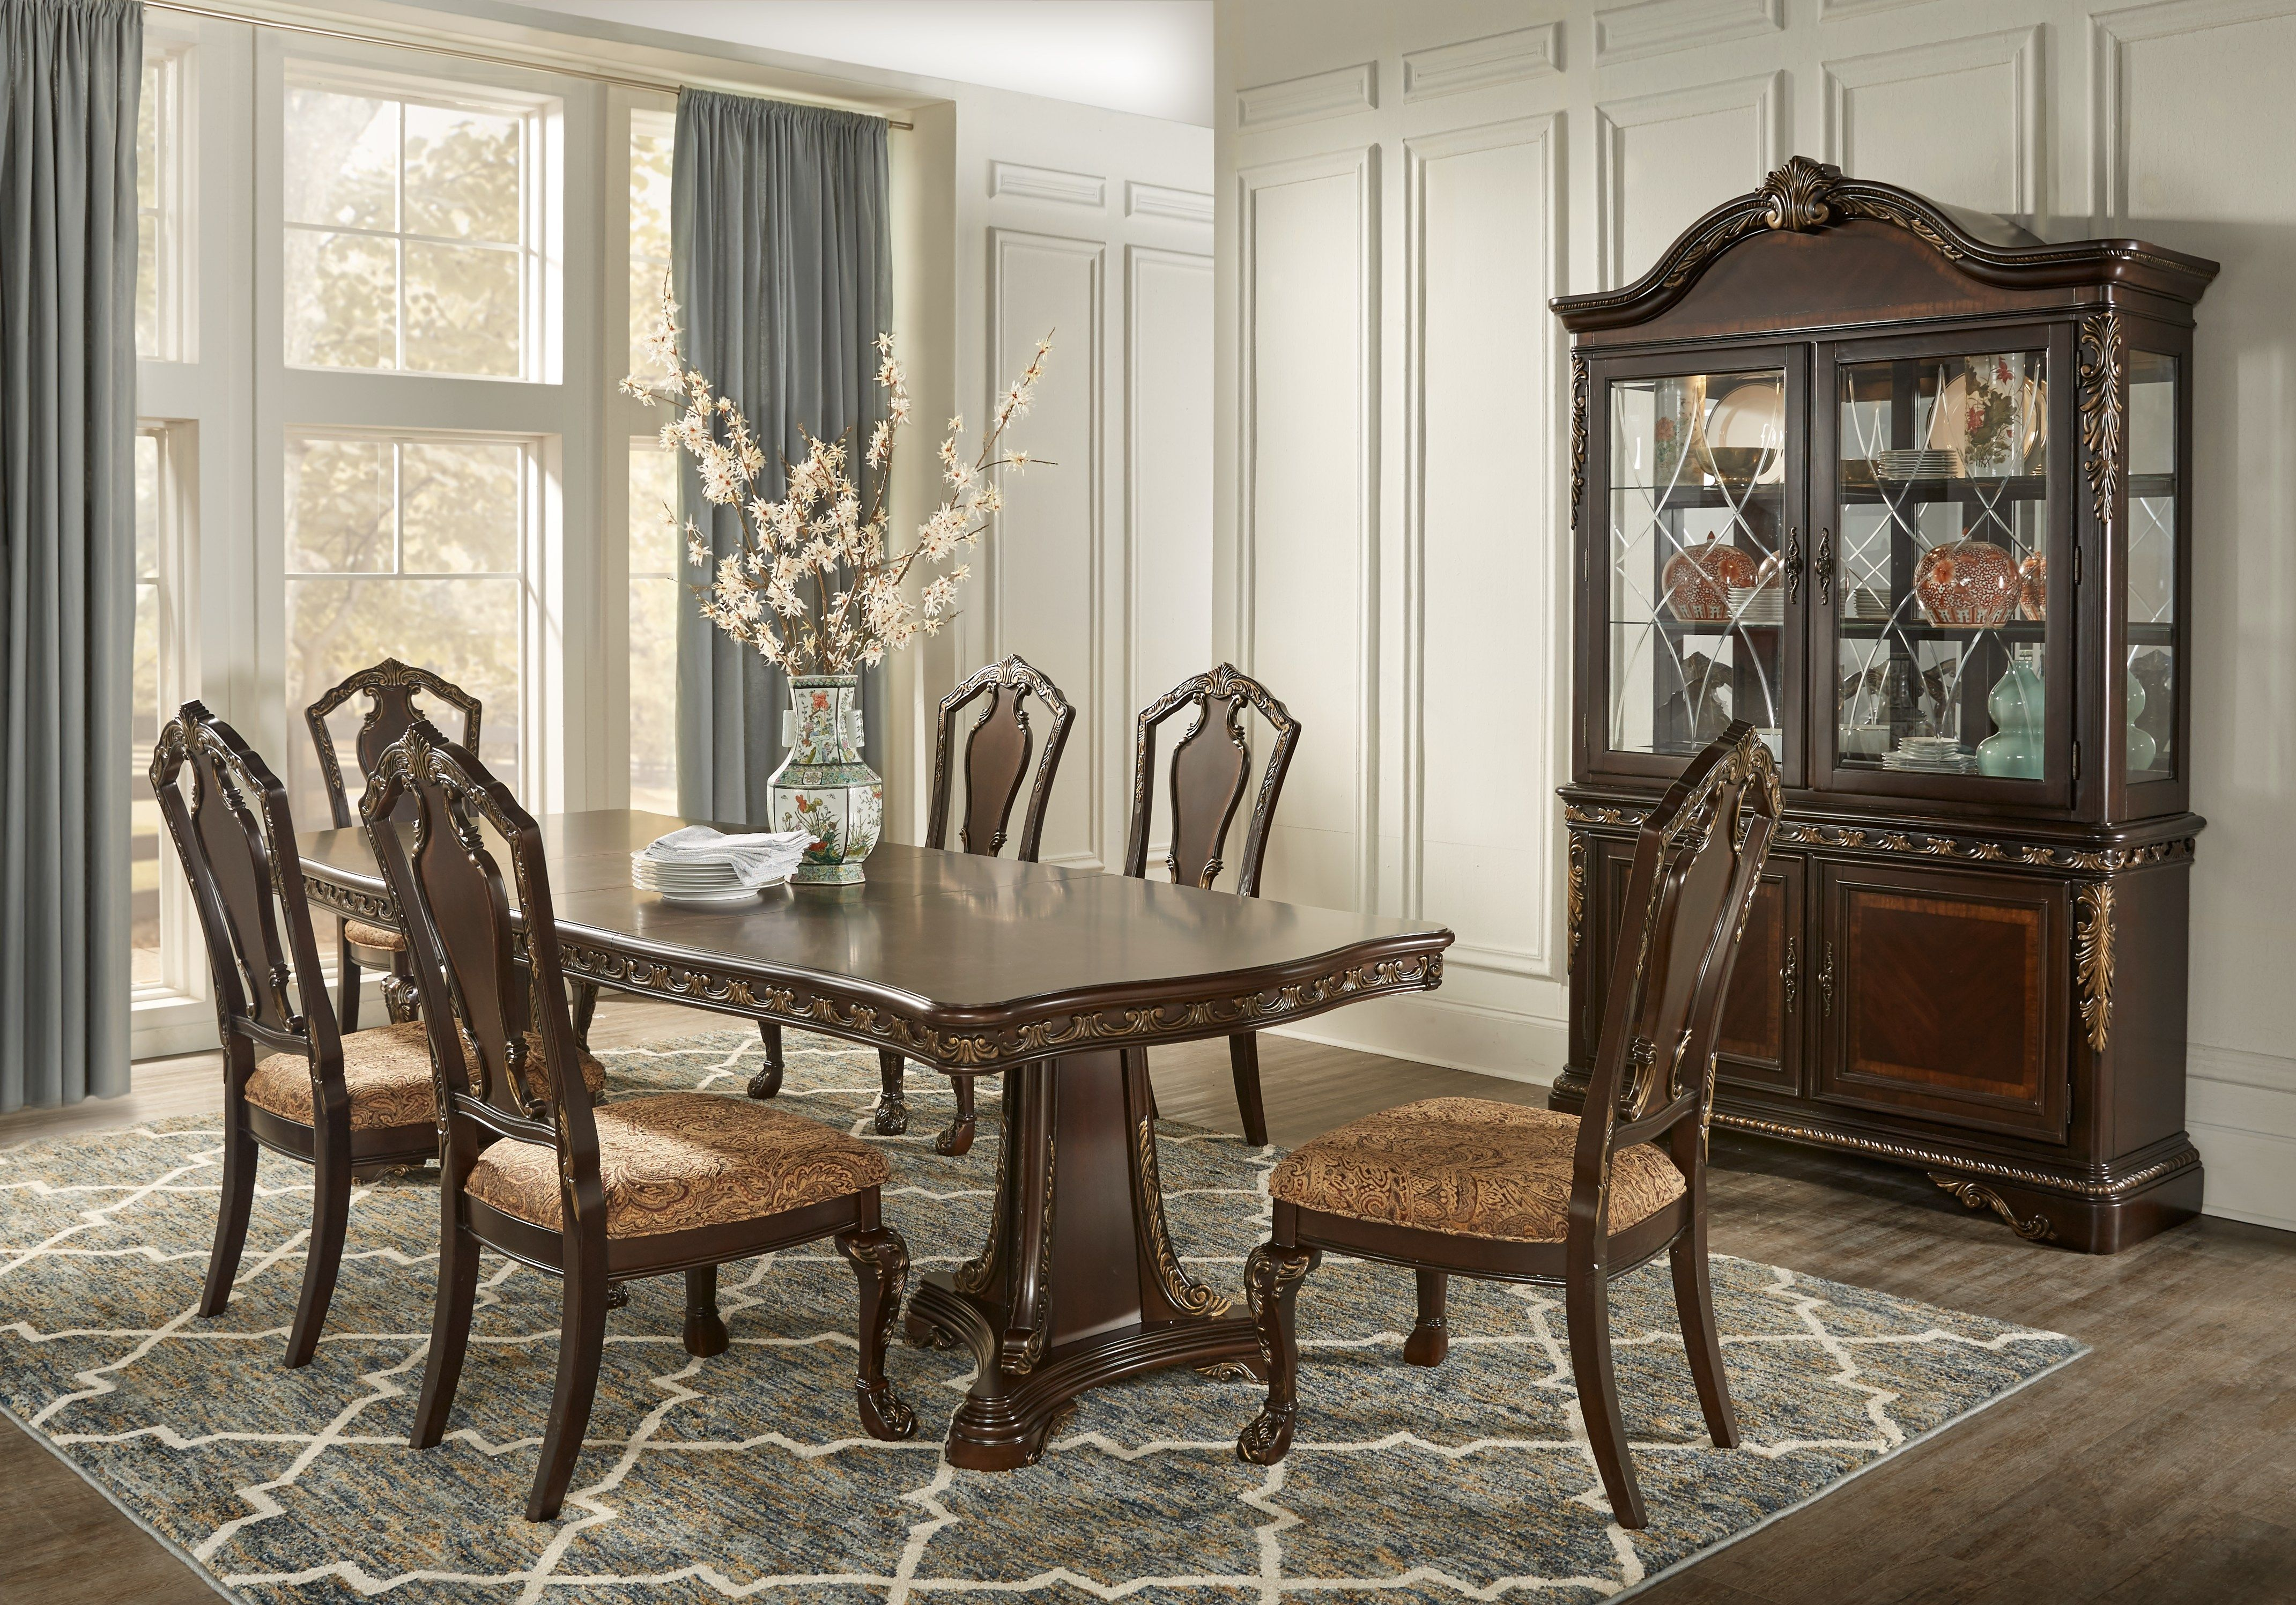 Aylesbury Brown Cherry 5 Pc Rectangle Dining Room Formal Dining